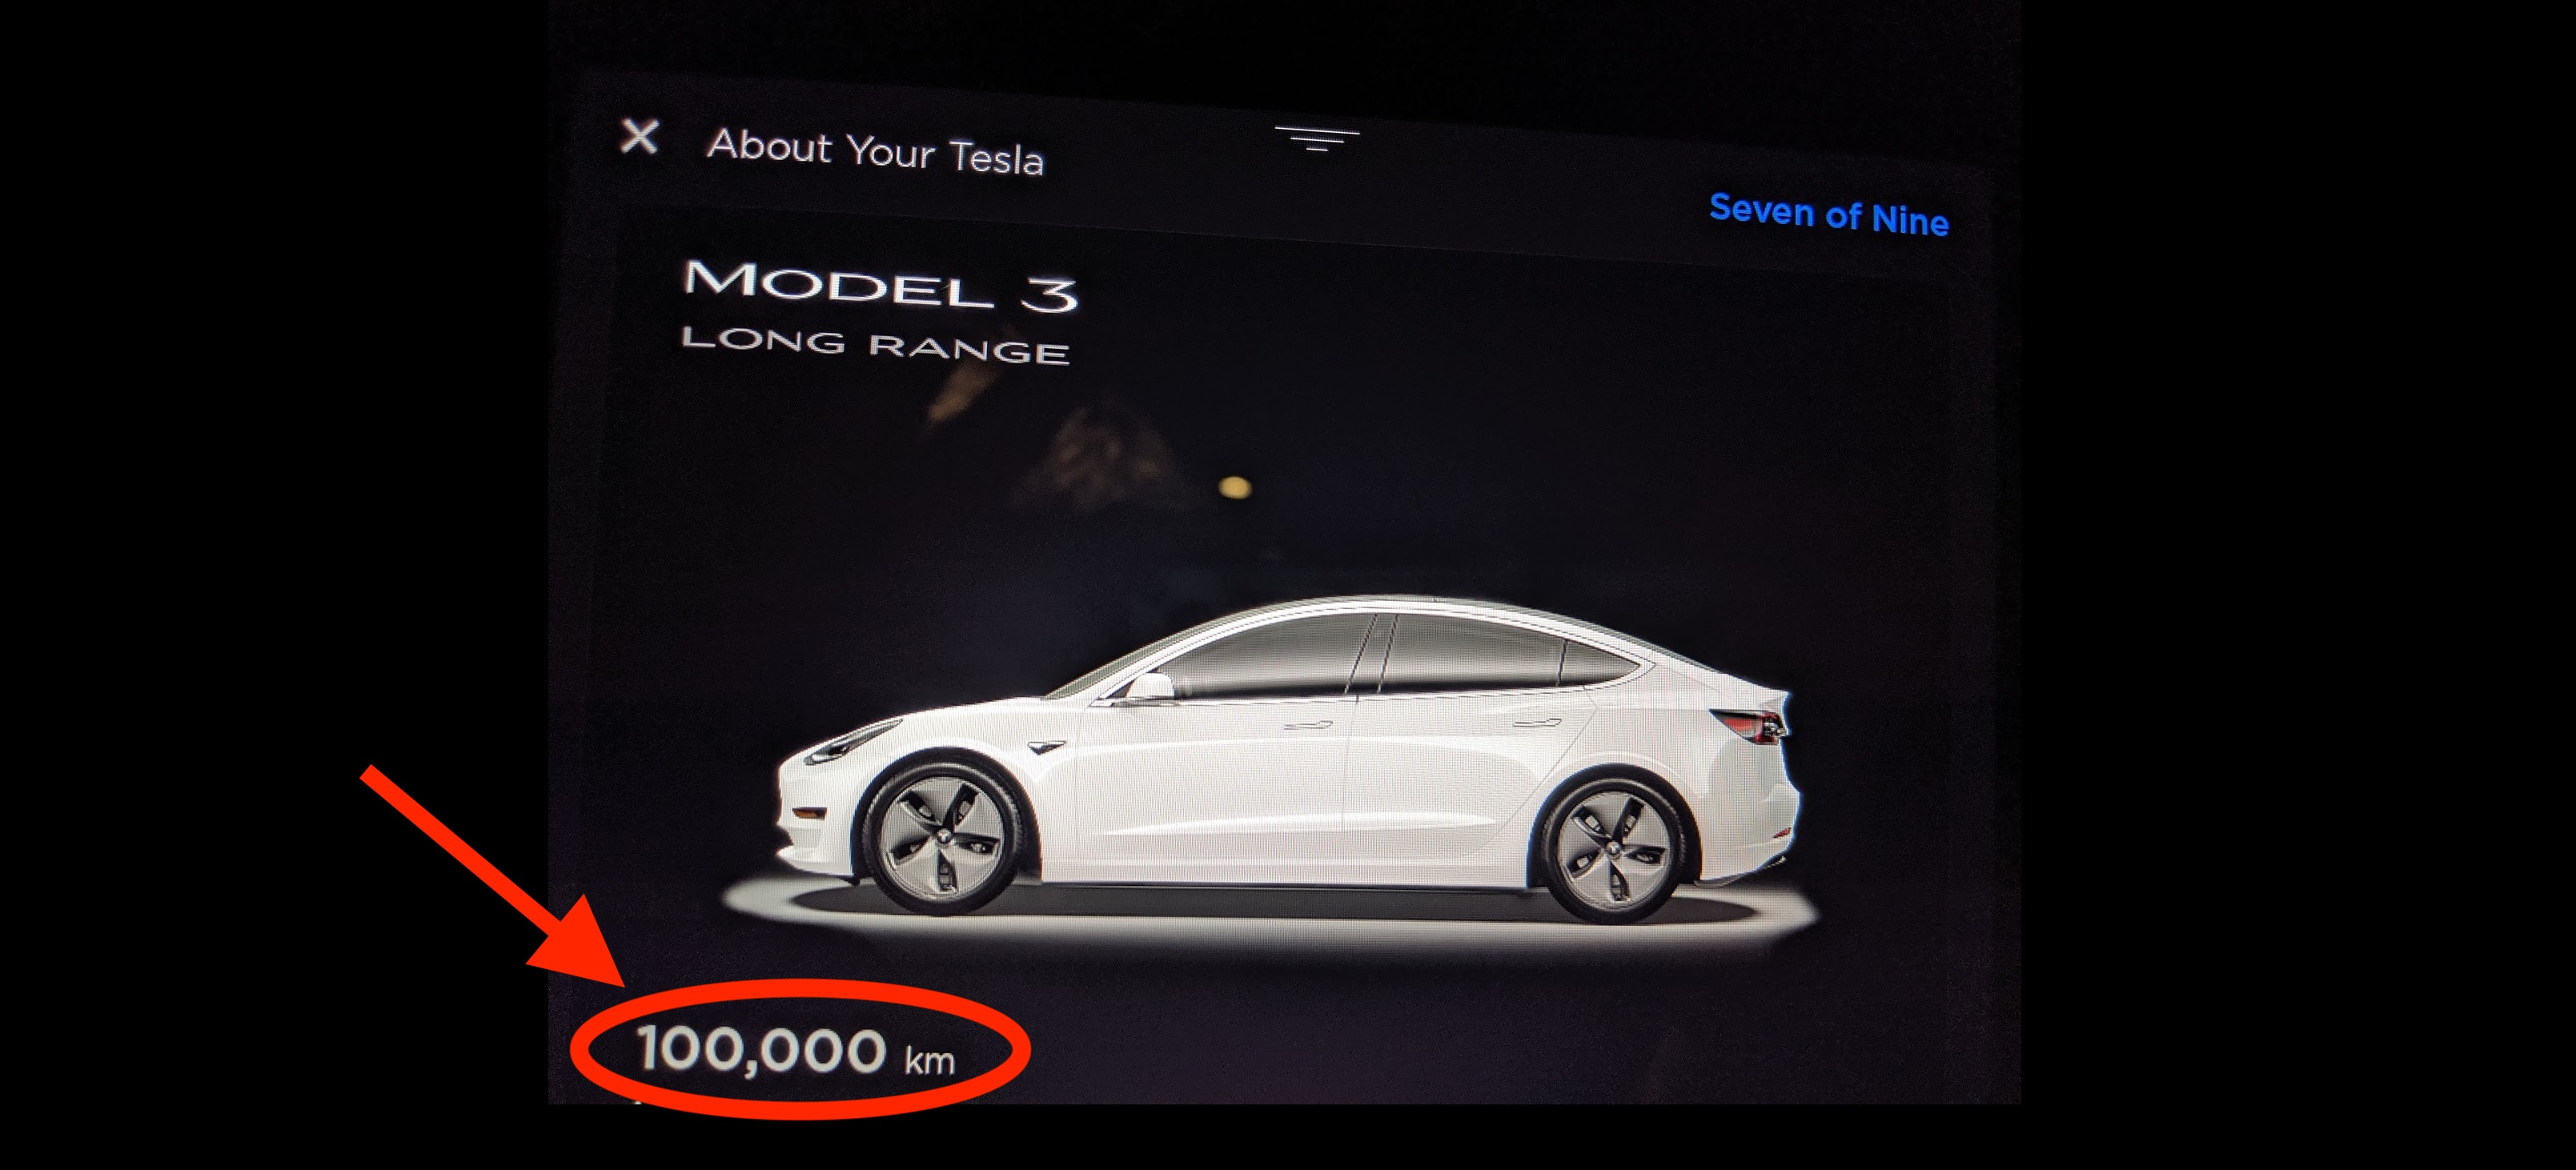 Tesla Model 3 owners with over 100,000 km are still impressed, love low maintenance and gas savings - Electrek